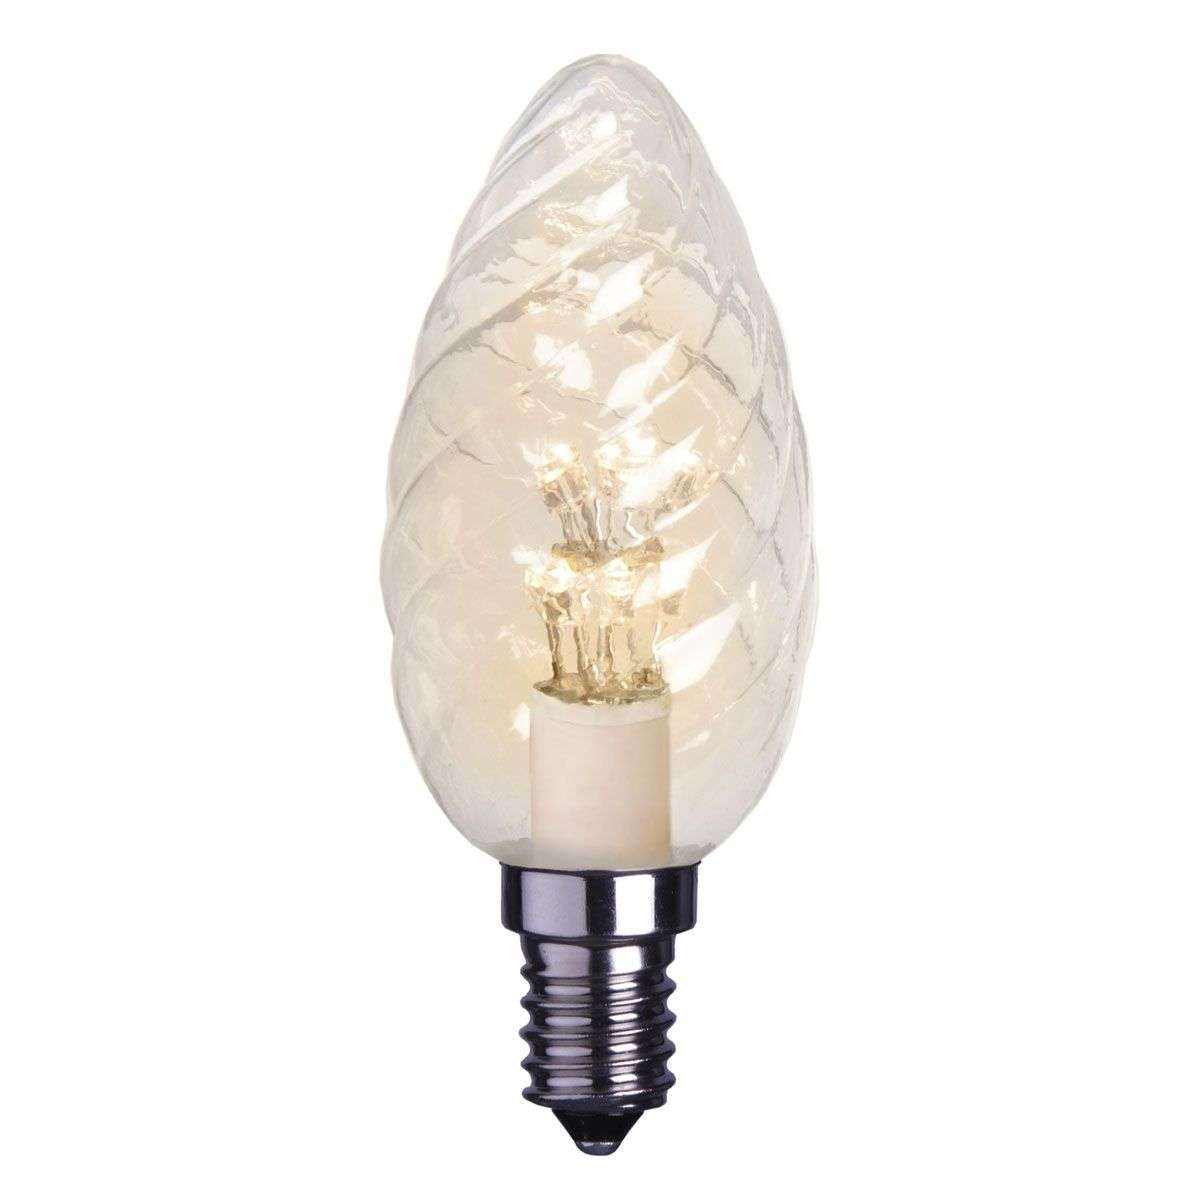 E14 0.9 W clear LED candle bulb twisted-1522106X-31